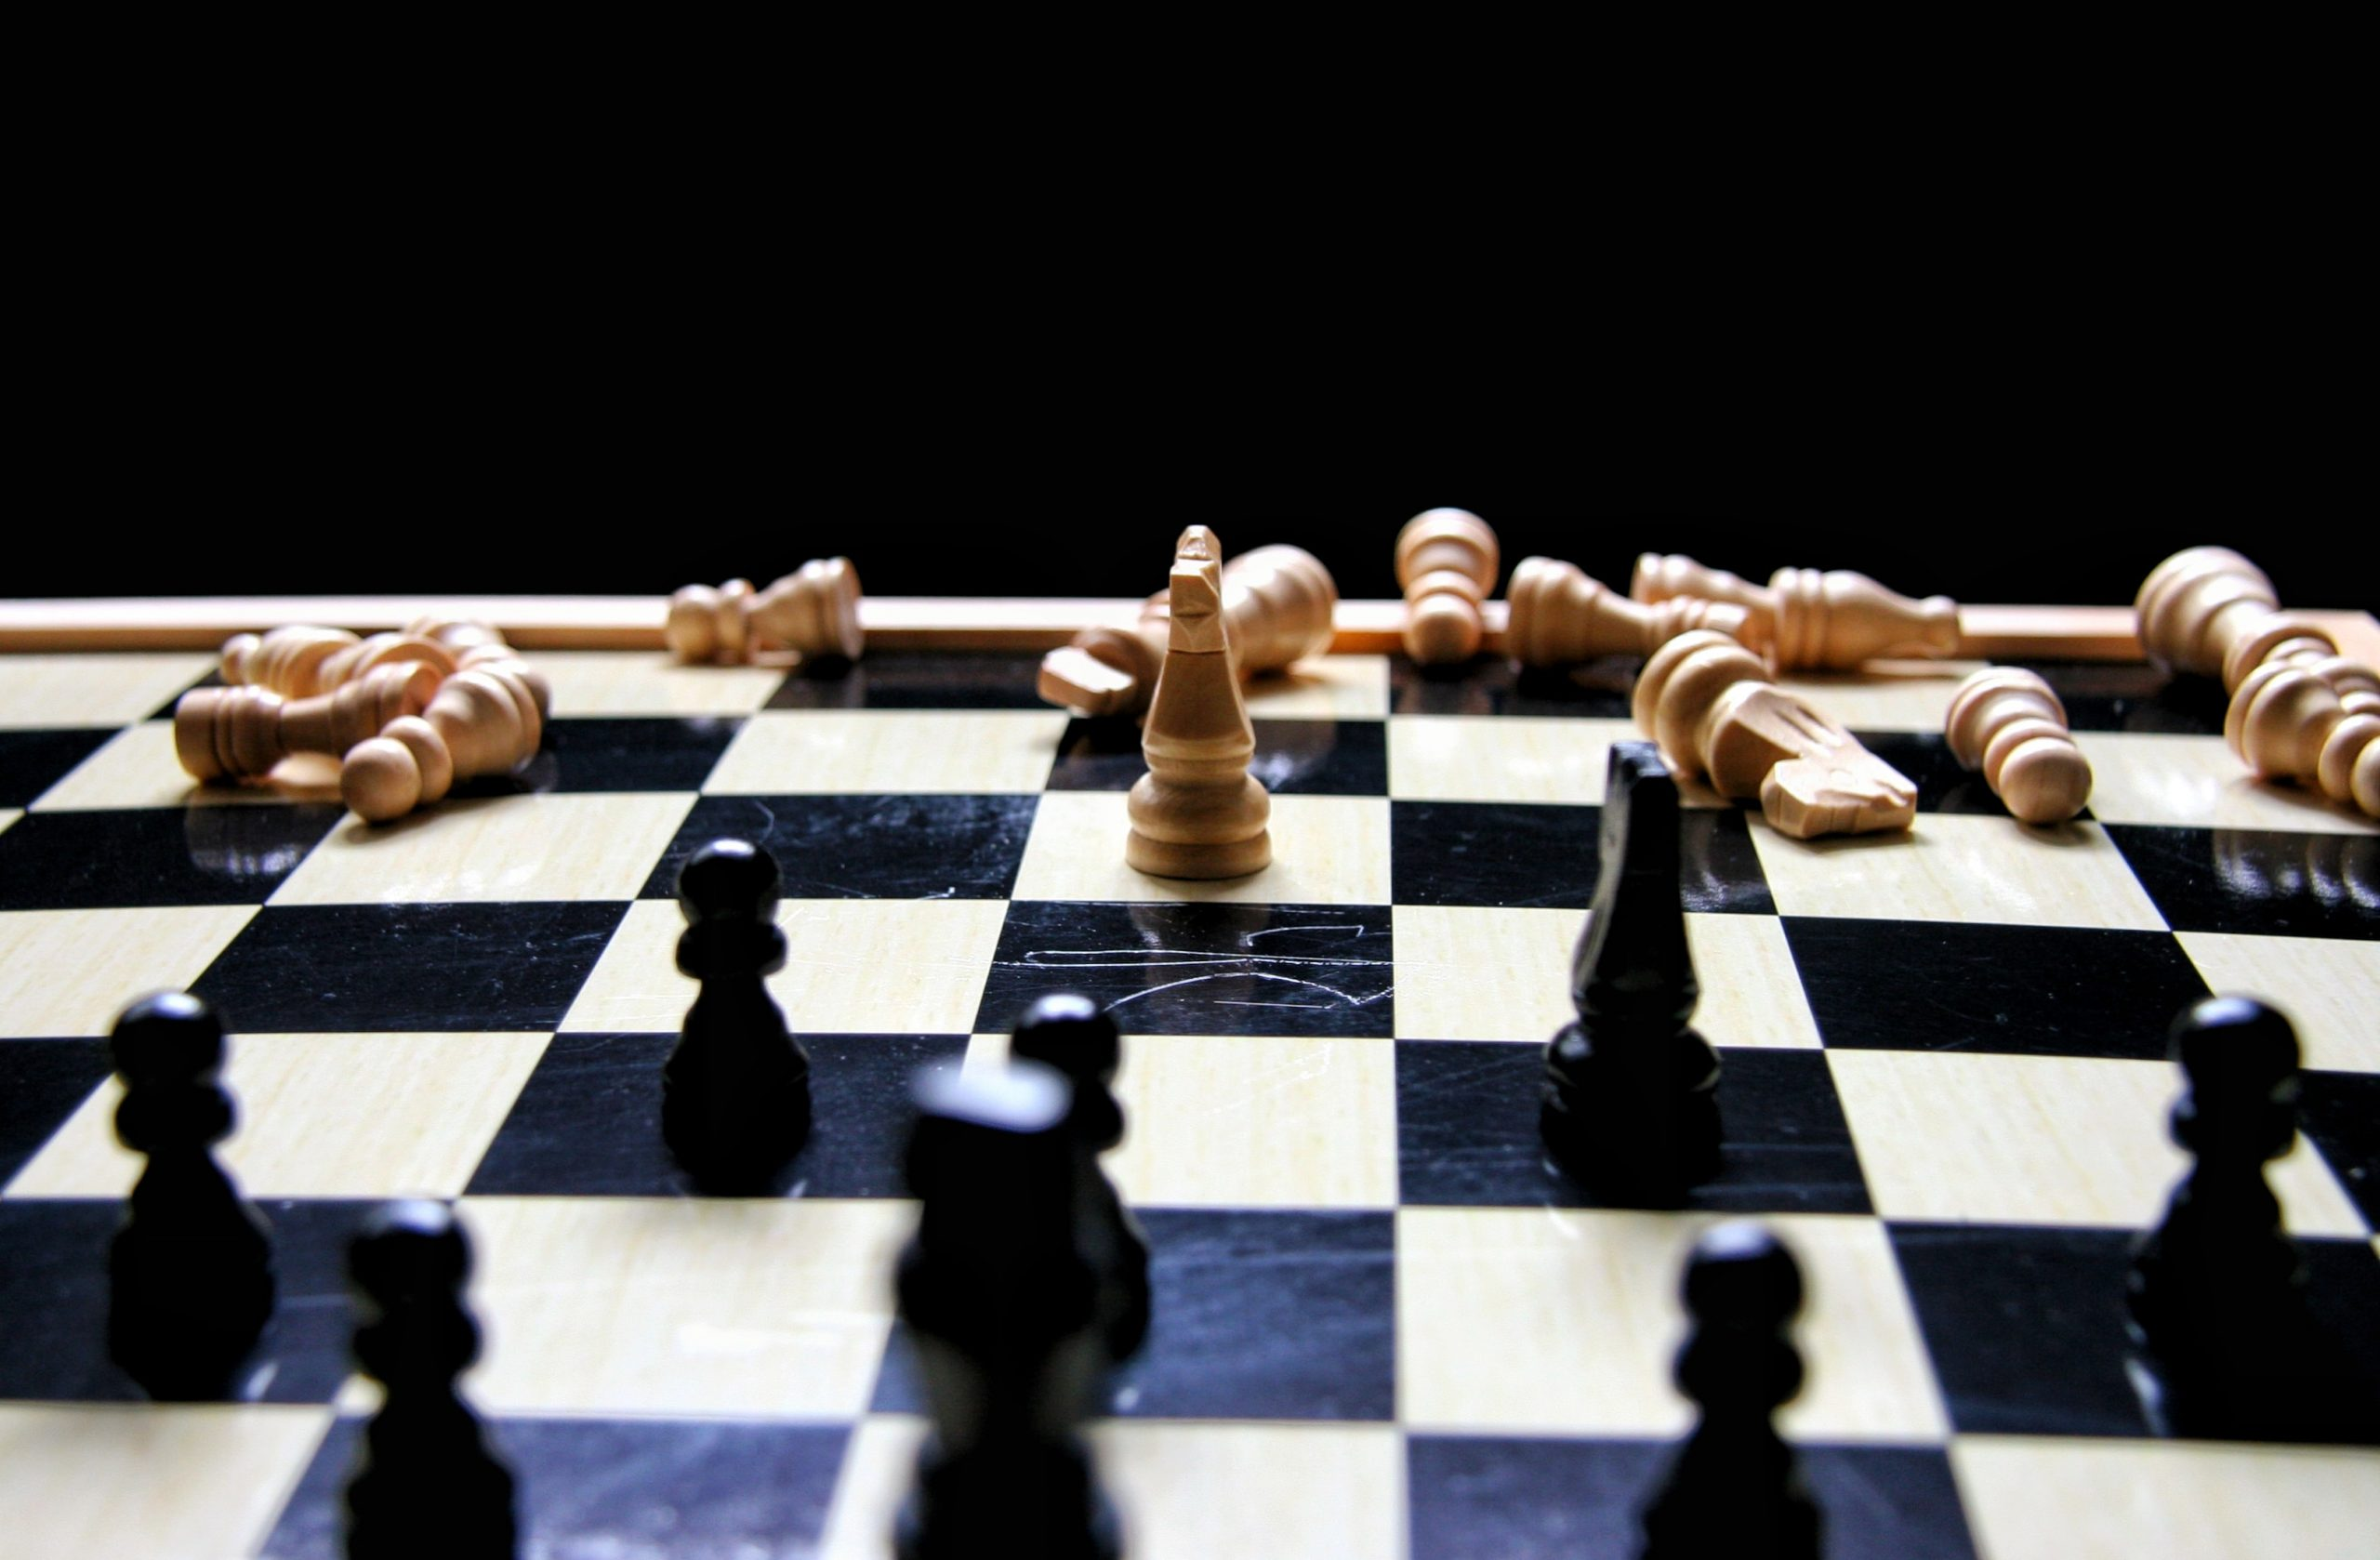 Decimated chess army